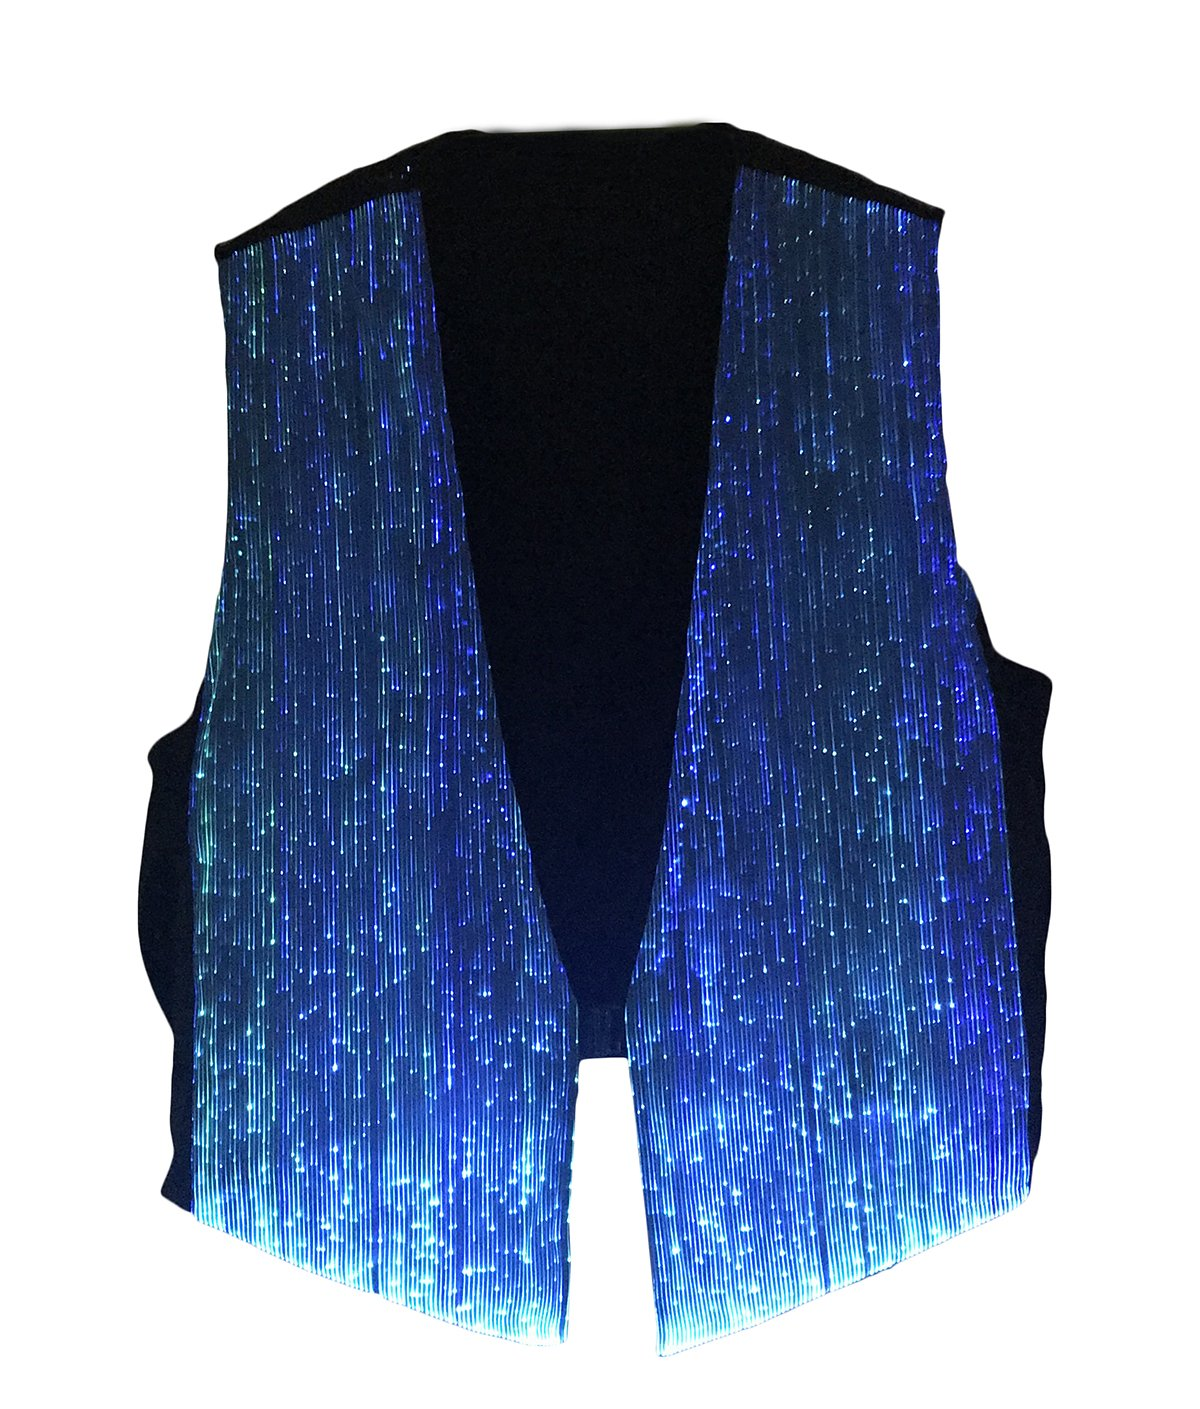 LED Fiber Optic Waistcoat Light up Vest for Men Fashion Glow in The Dark Luminous Vest (XL, Blue)